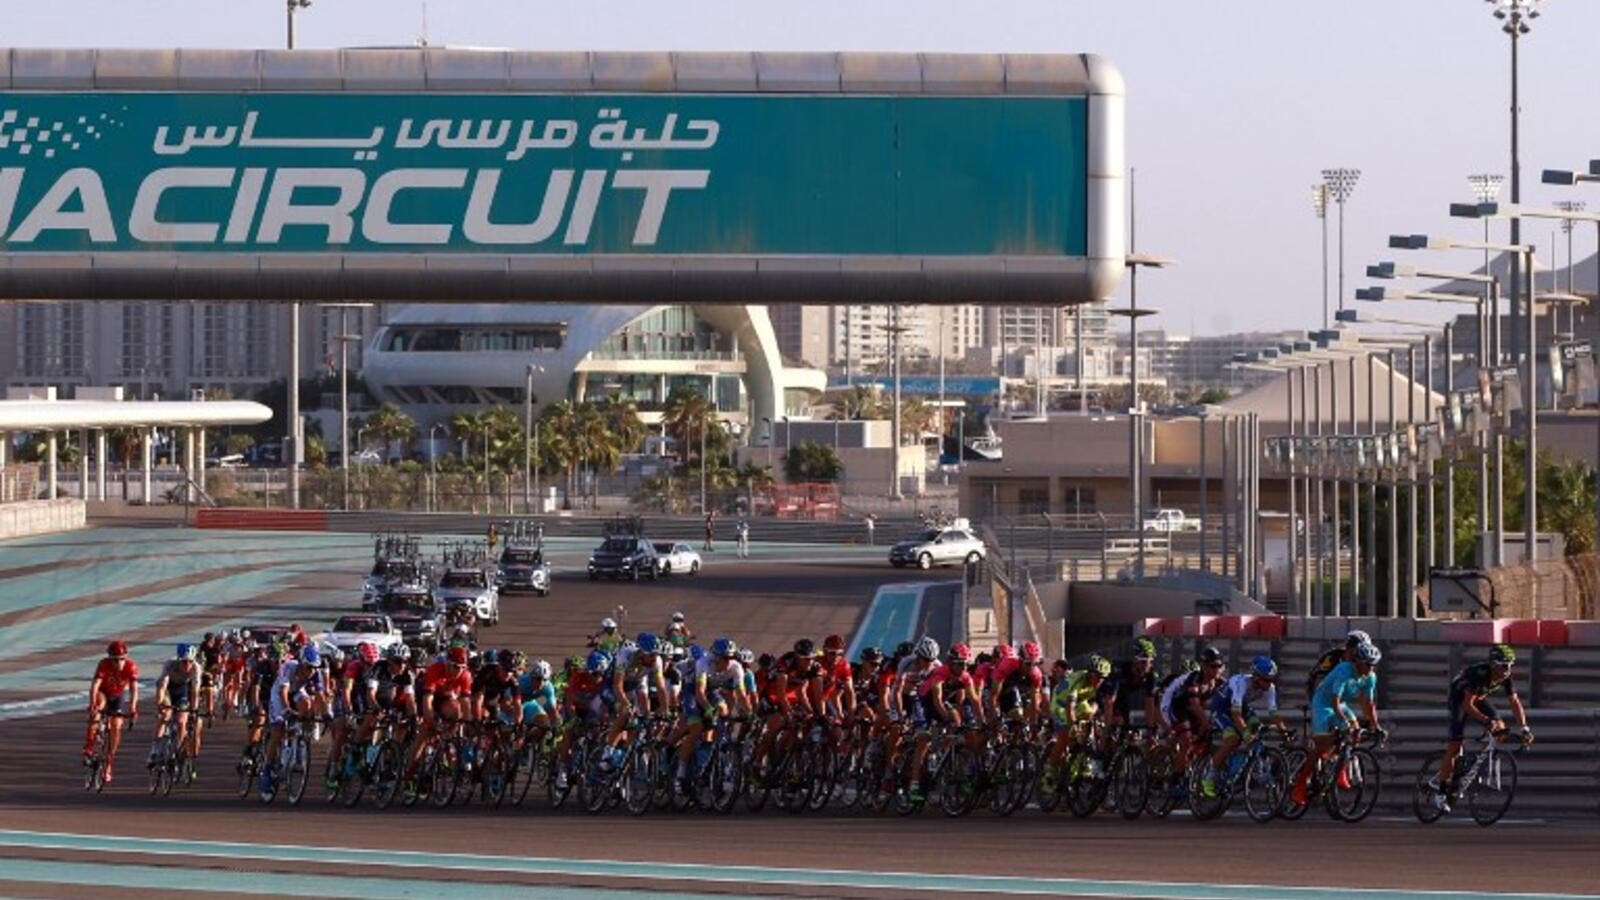 Cyclists ride their bikes during the Abu Dhabi tour from the Yas Marina Circuit to Yas Mall where the tour finishes in the Emirati capital Abu Dhabi, on October 11, 2015. AFP PHOTO / STR